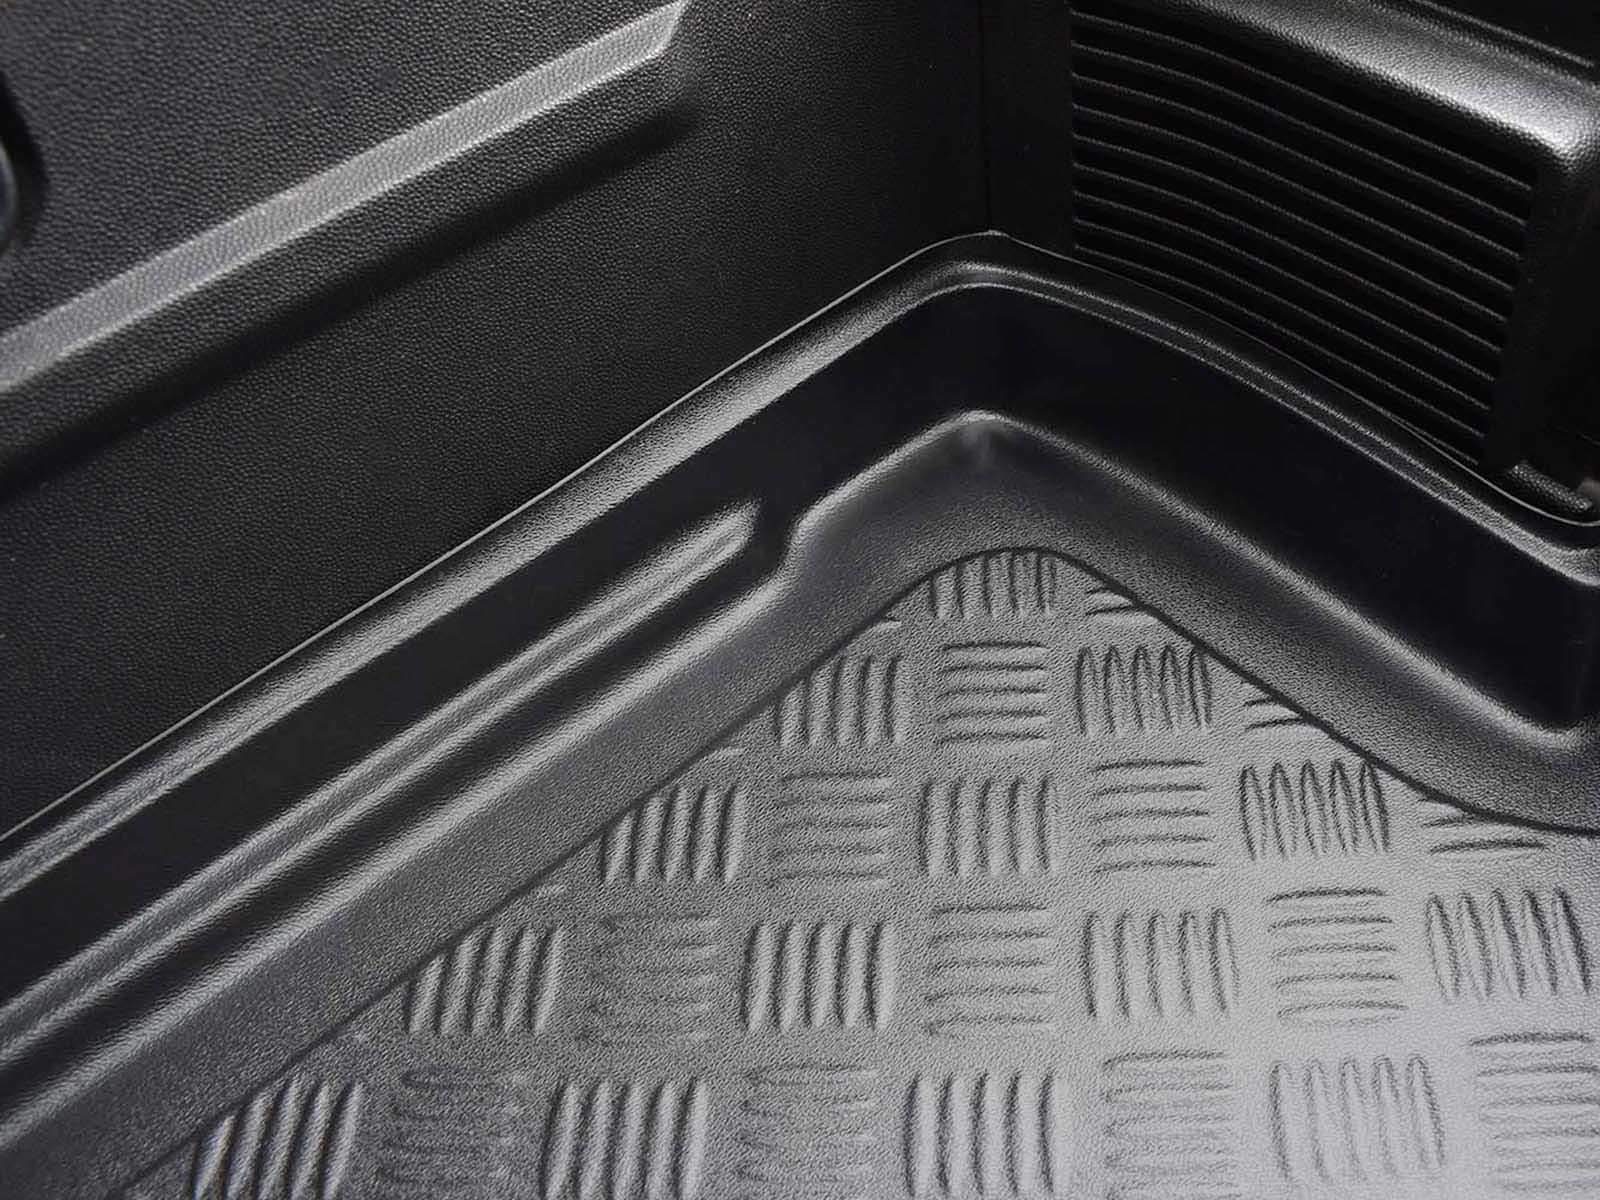 2017 on Nomad Auto Tailored Fit Durable Black Boot Liner Tray Mat Protector for Vauxhall Insignia Grand Sport